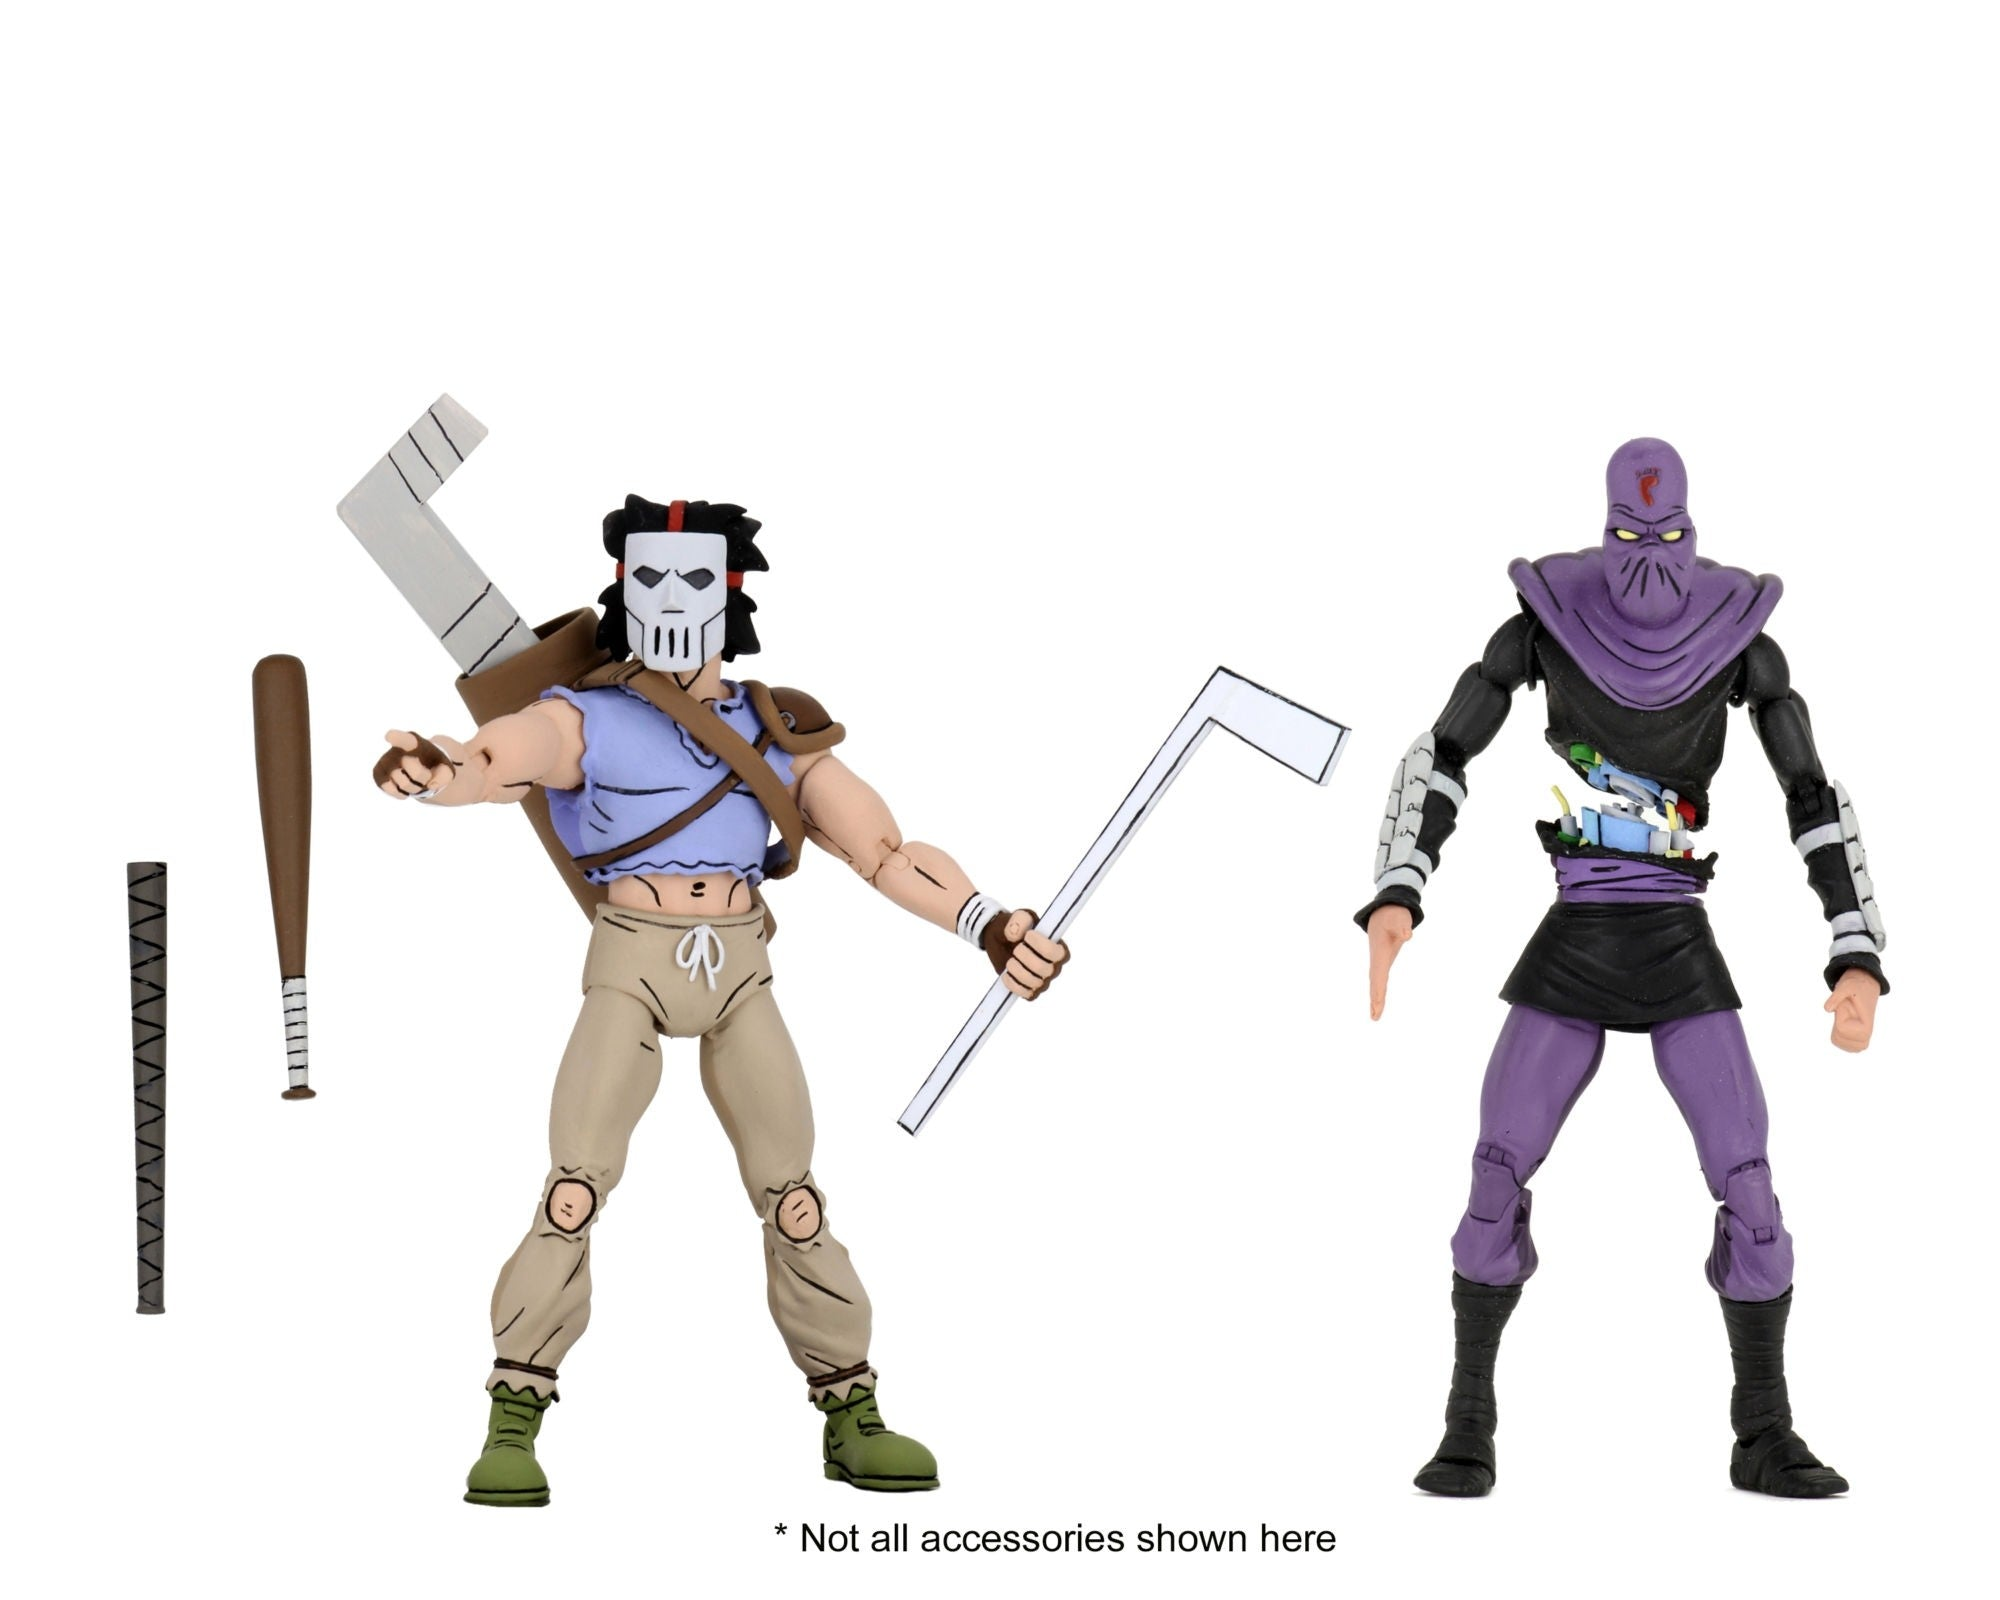 NECA TEENAGE MUTANT NINJA TURTLES CASEY JONES & FOOT SOLDIER TMNT ACTION FIGURE 2 PACK